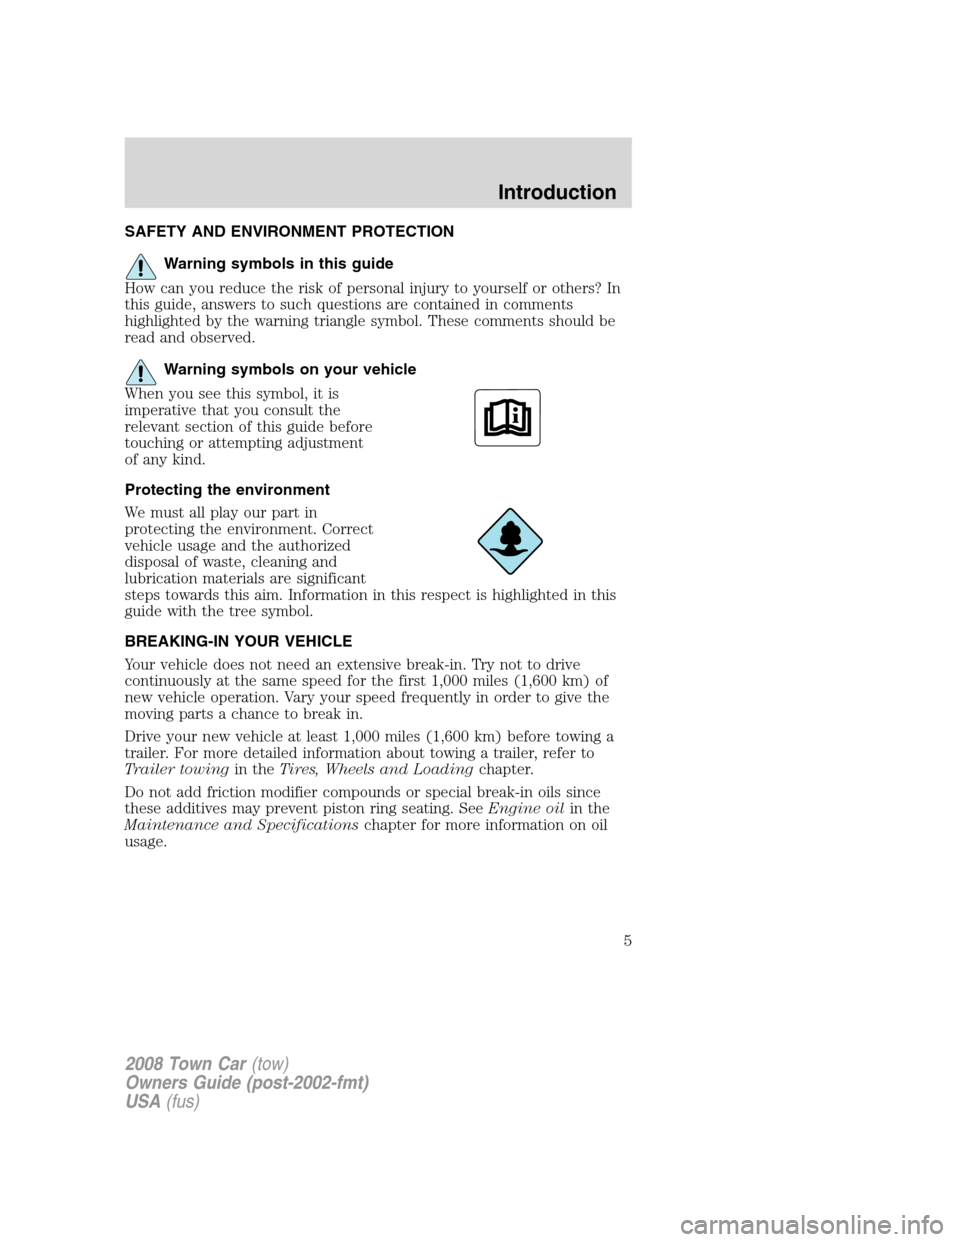 LINCOLN TOWN CAR 2008  Owners Manual, Page 5